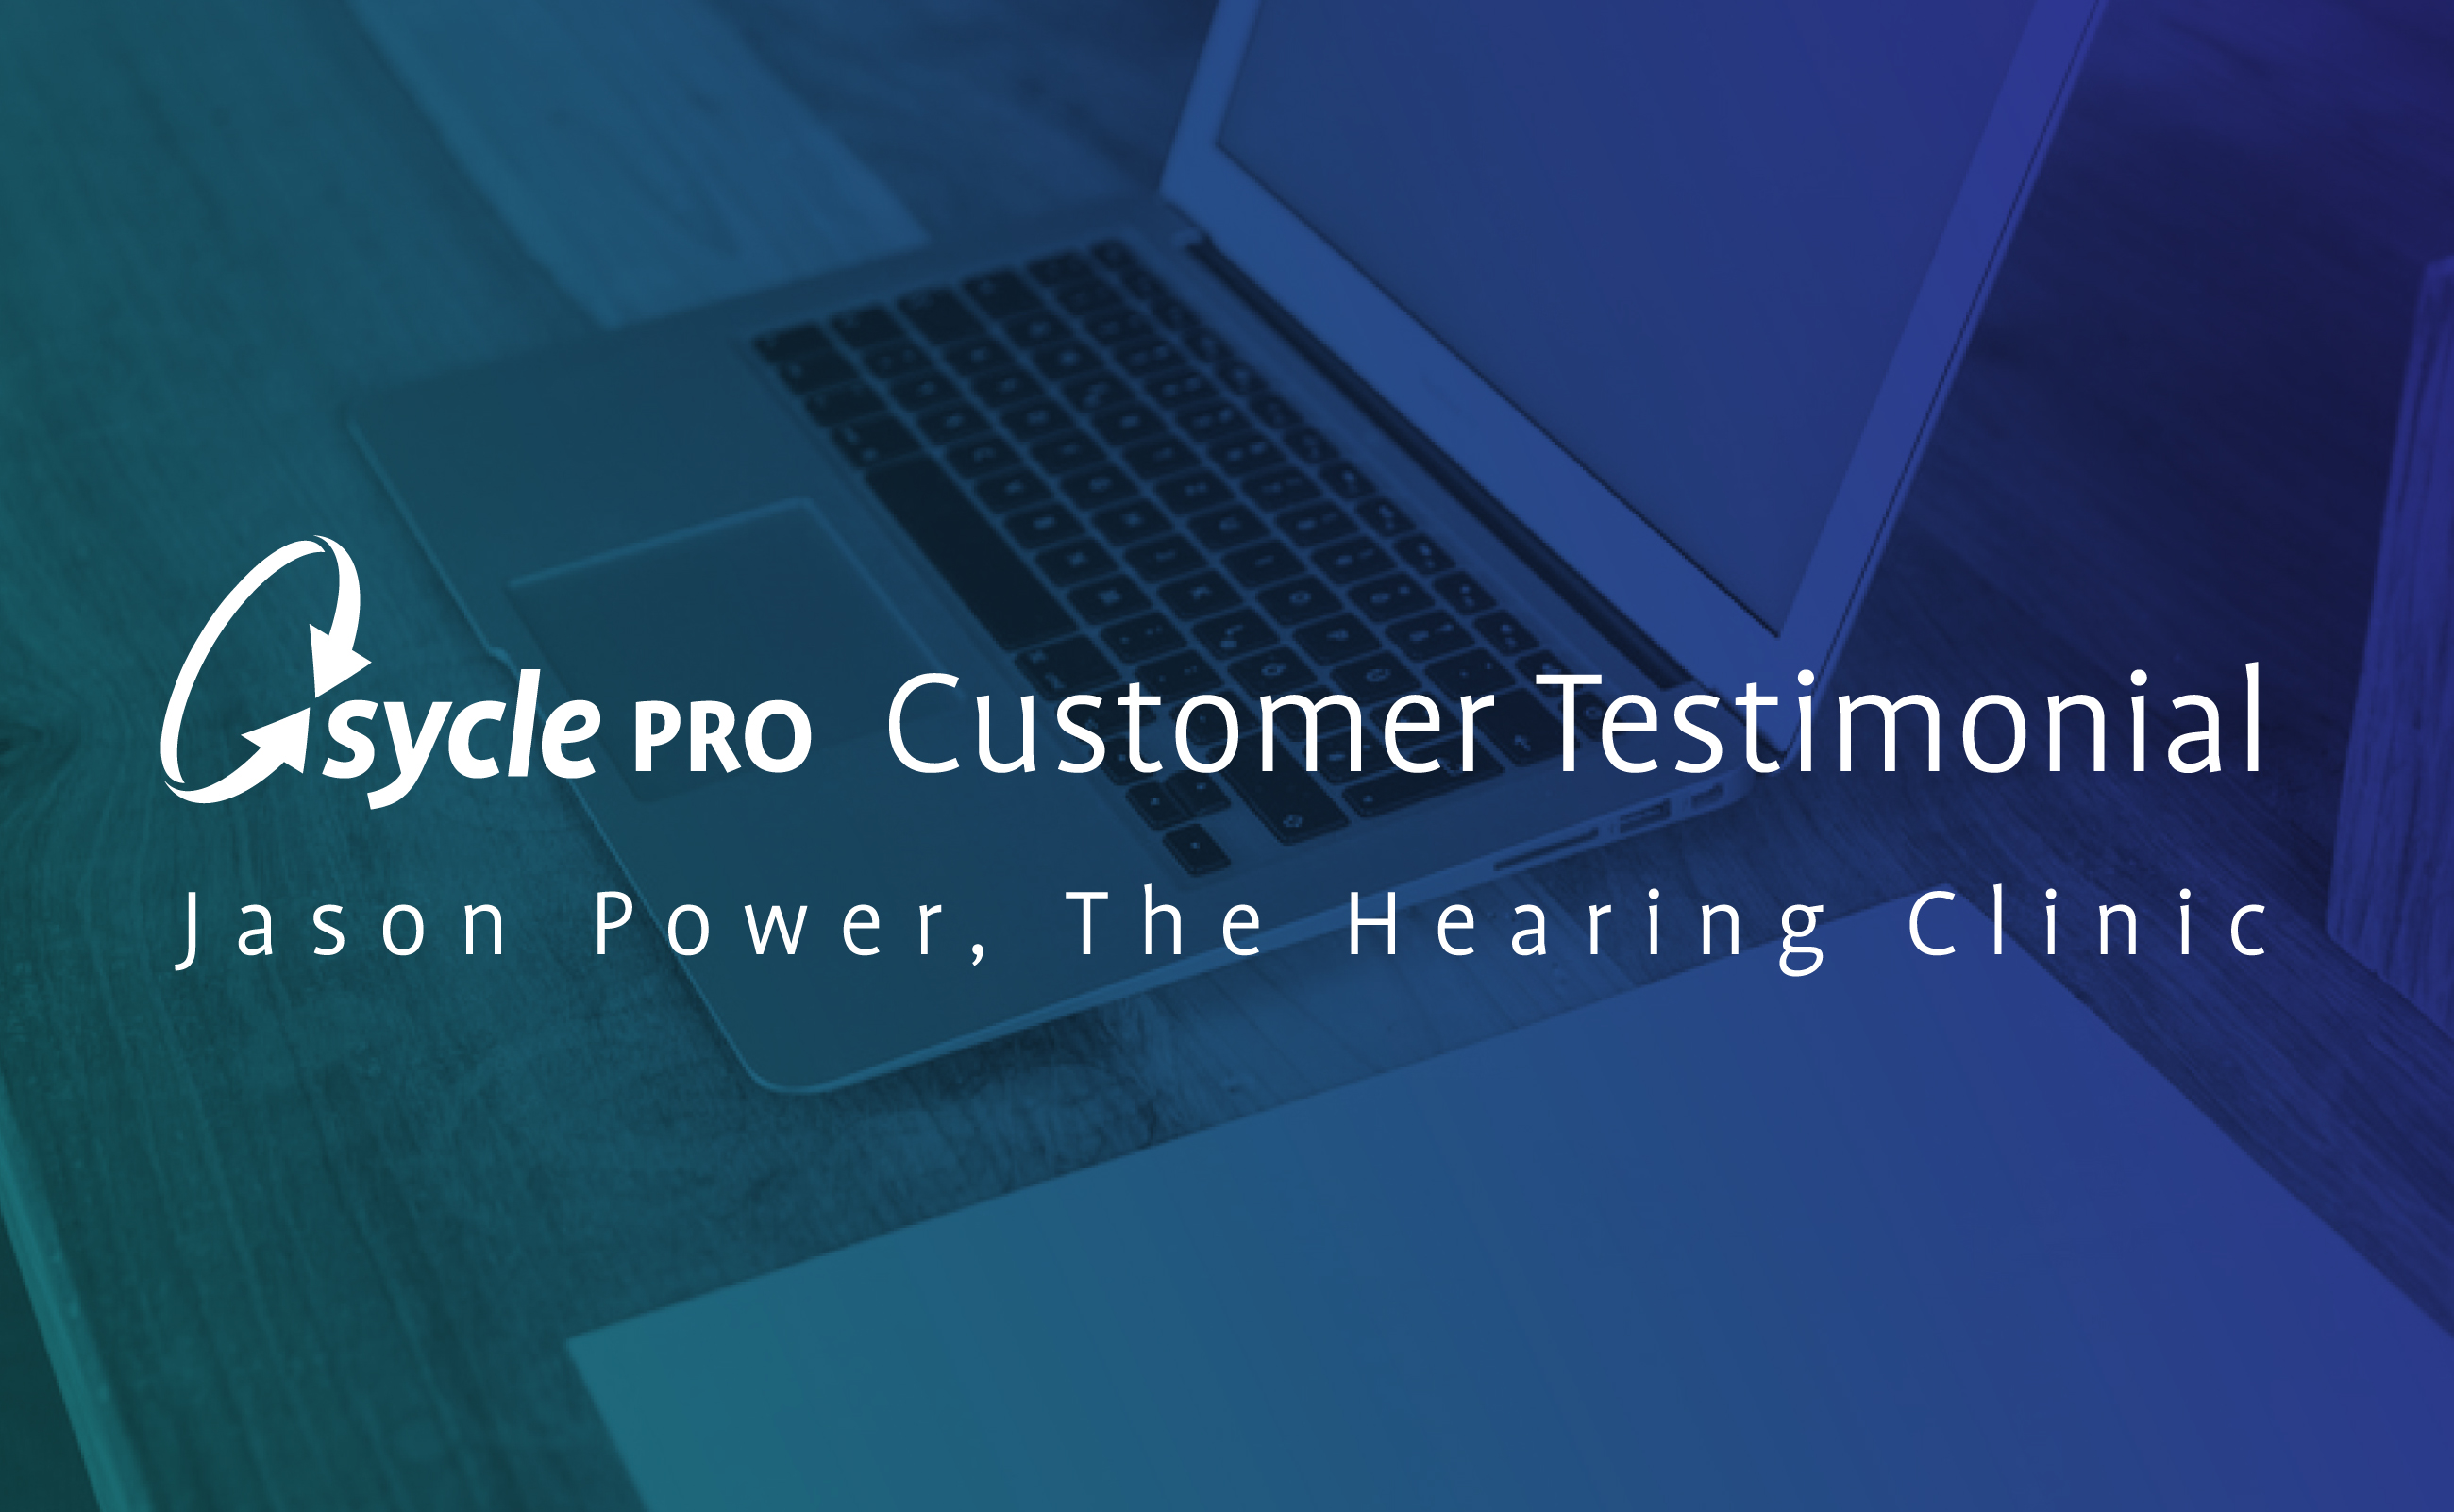 Sycle PRO Customer Testimonial: Jason Power image